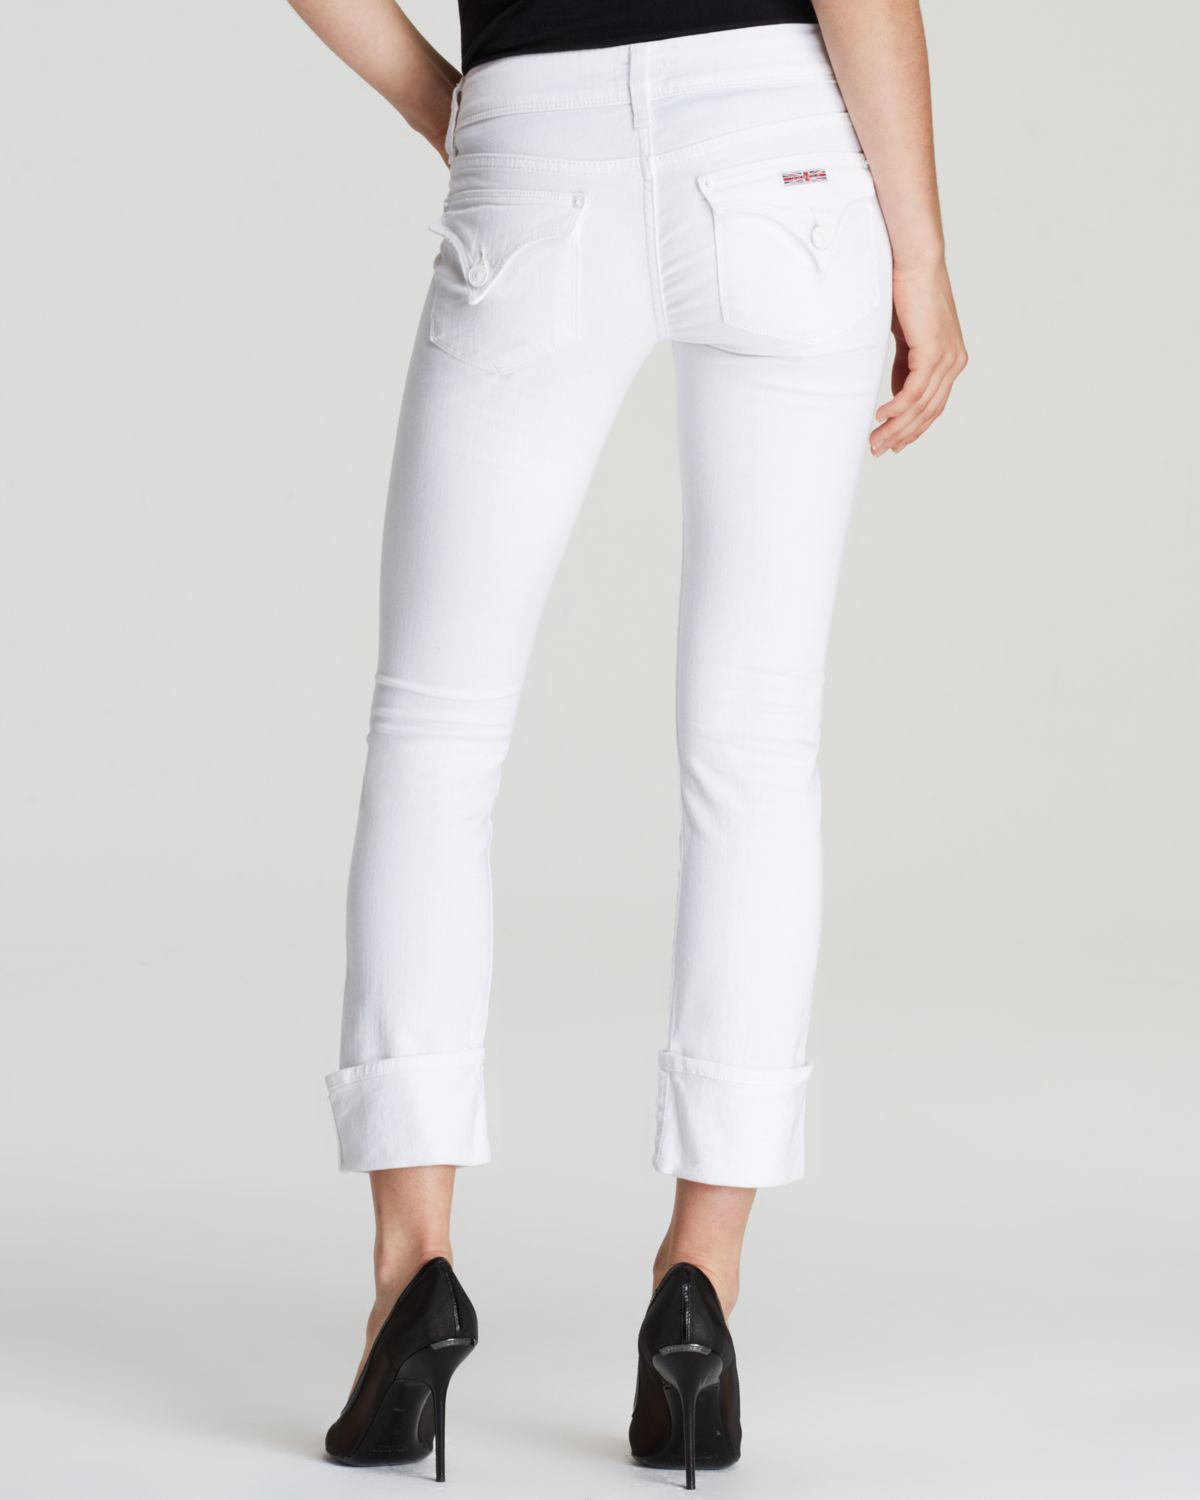 83f64660d0f Gallery. Previously sold at: Bloomingdale's · Women's White Jeans